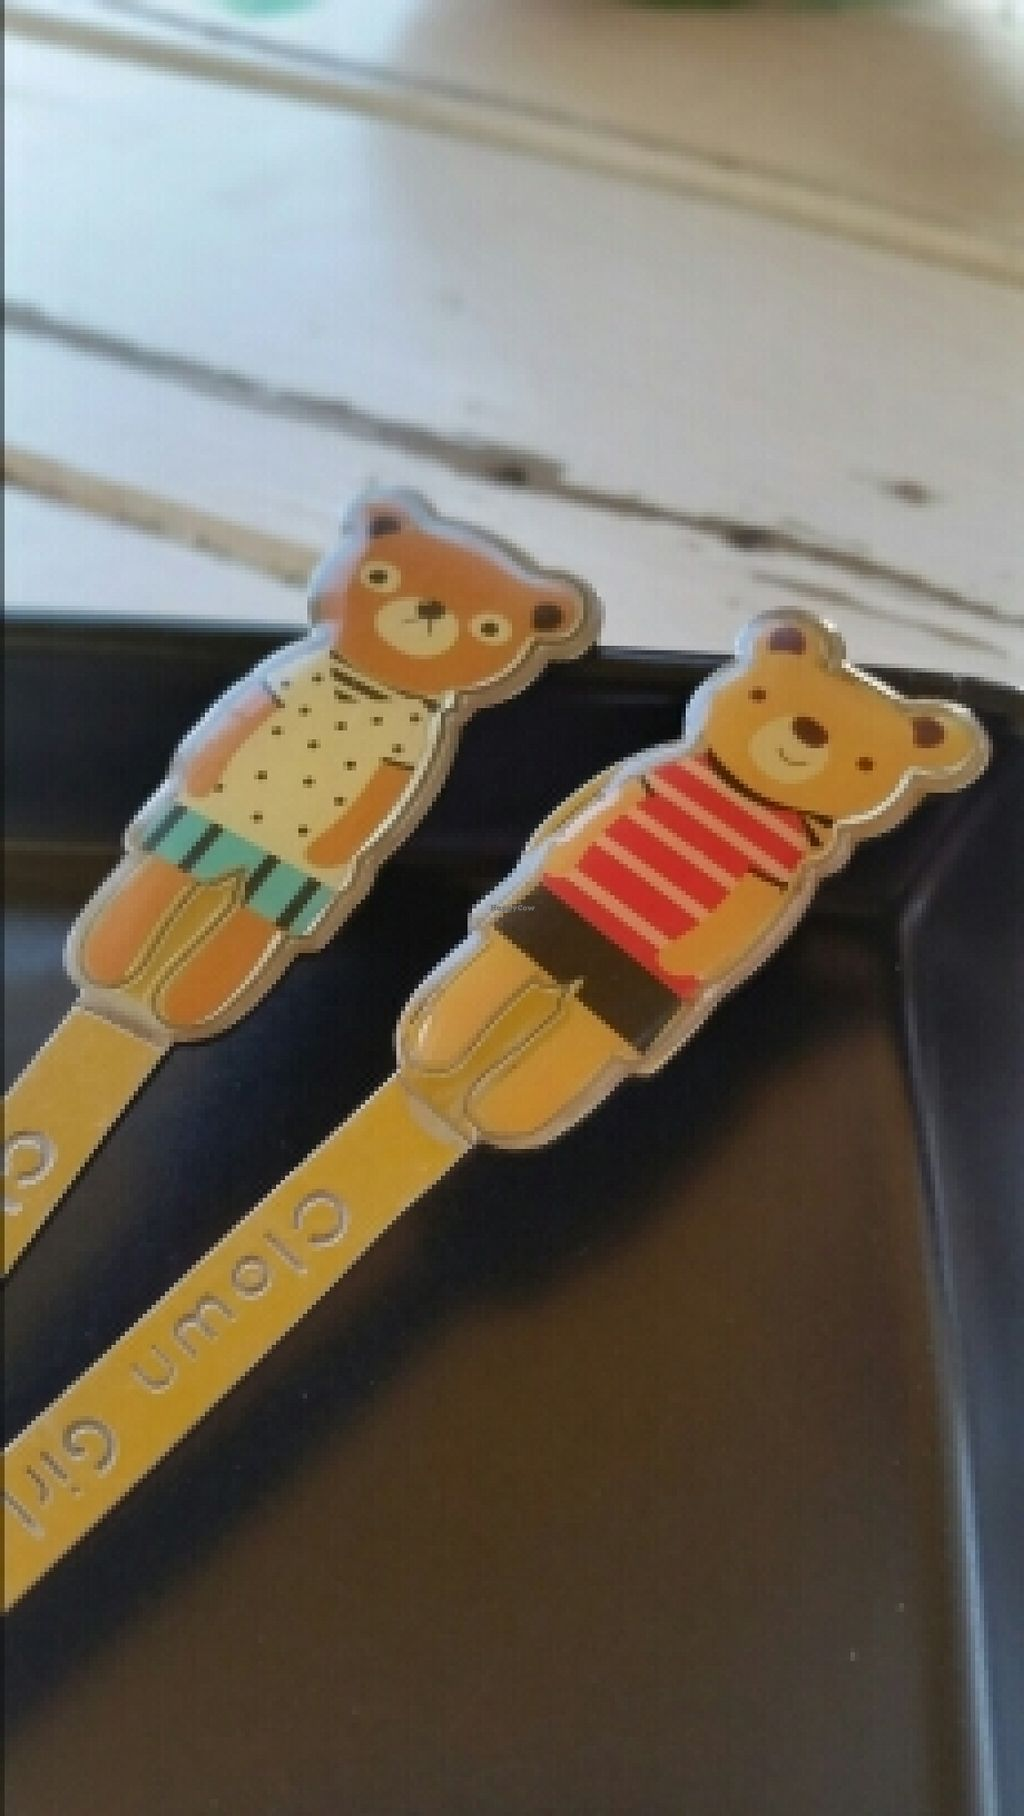 """Photo of Ice Love You  by <a href=""""/members/profile/uschiverena"""">uschiverena</a> <br/>cutest spoons ever <br/> November 23, 2015  - <a href='/contact/abuse/image/48705/125924'>Report</a>"""